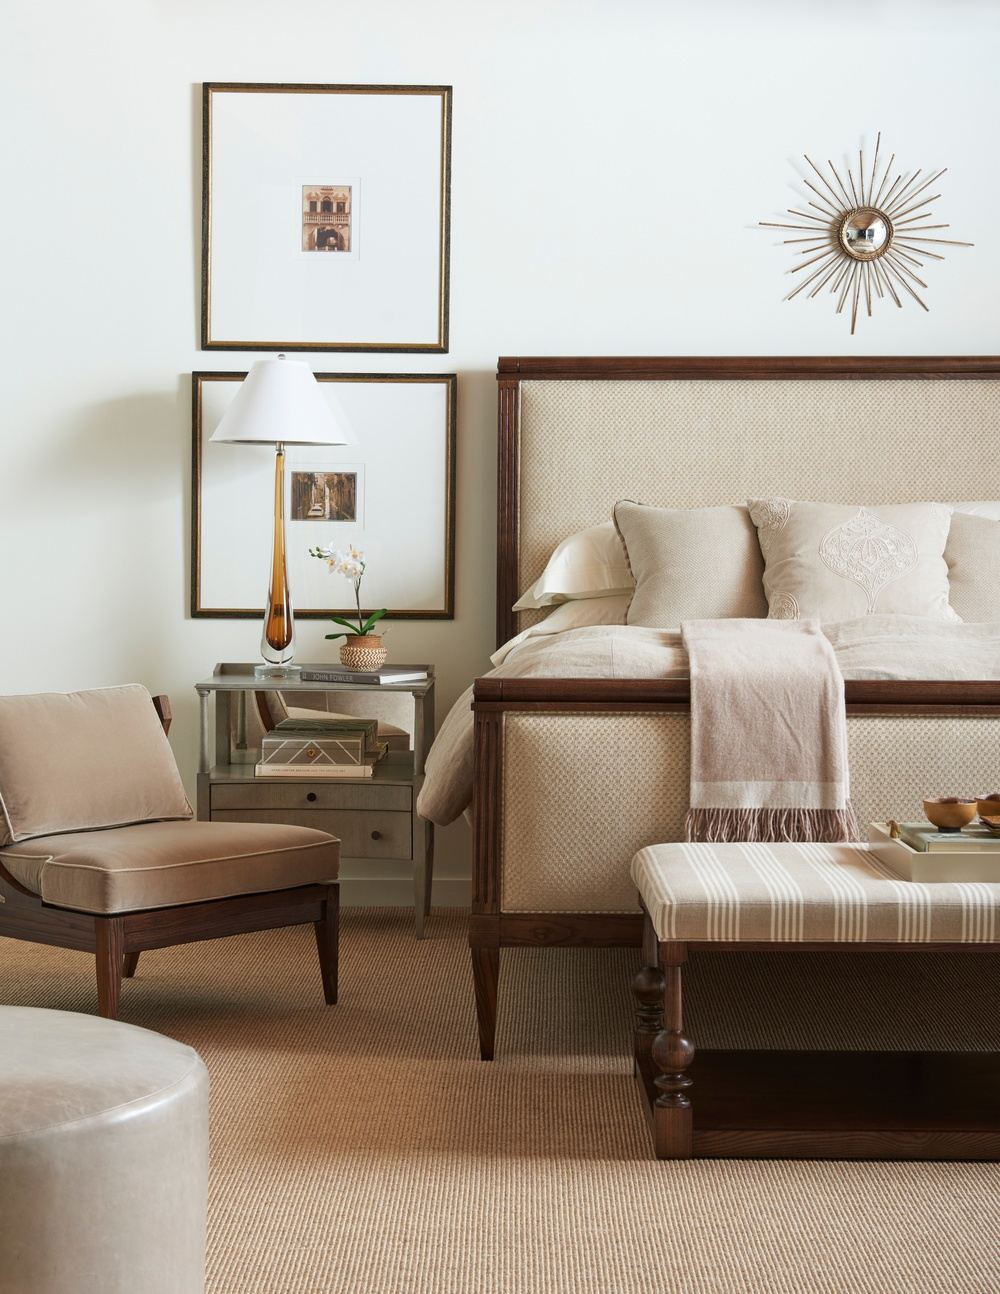 Hickory Chair - Rencourt Queen Bed